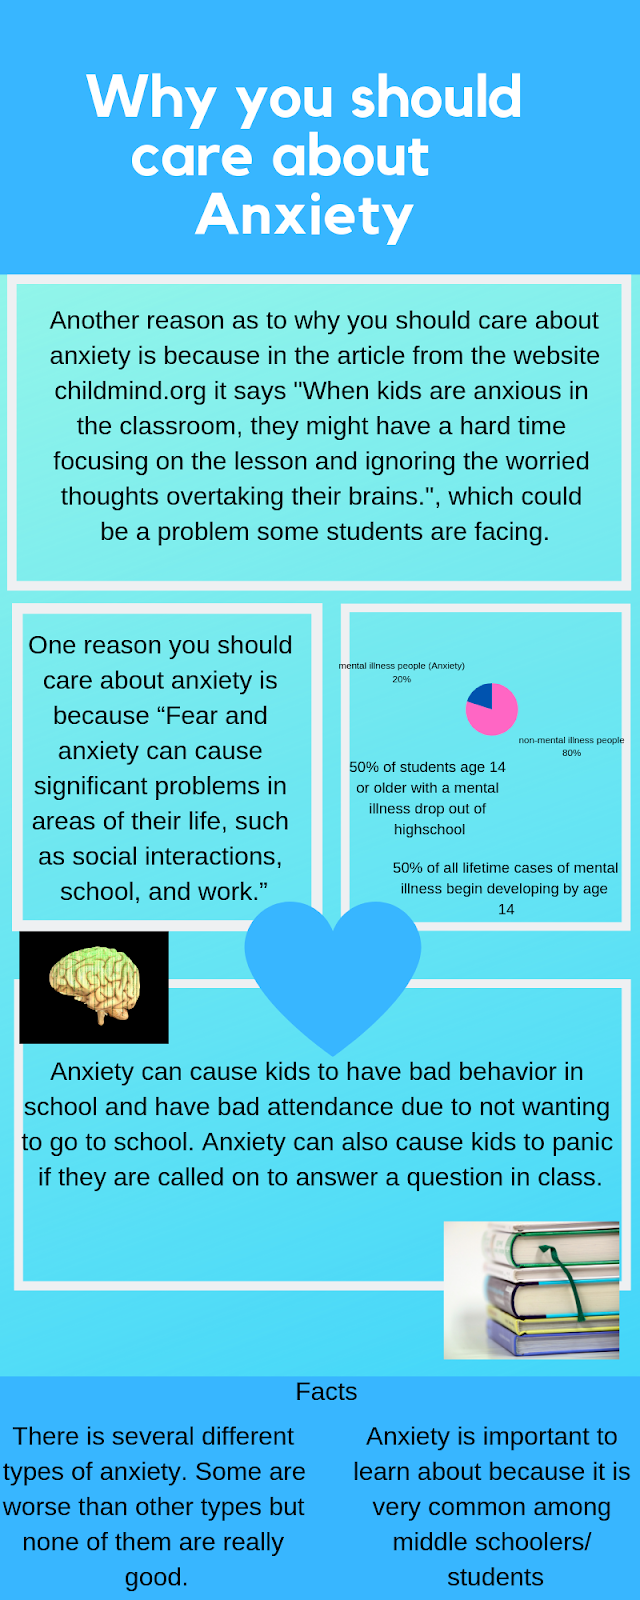 Information on Anxiety